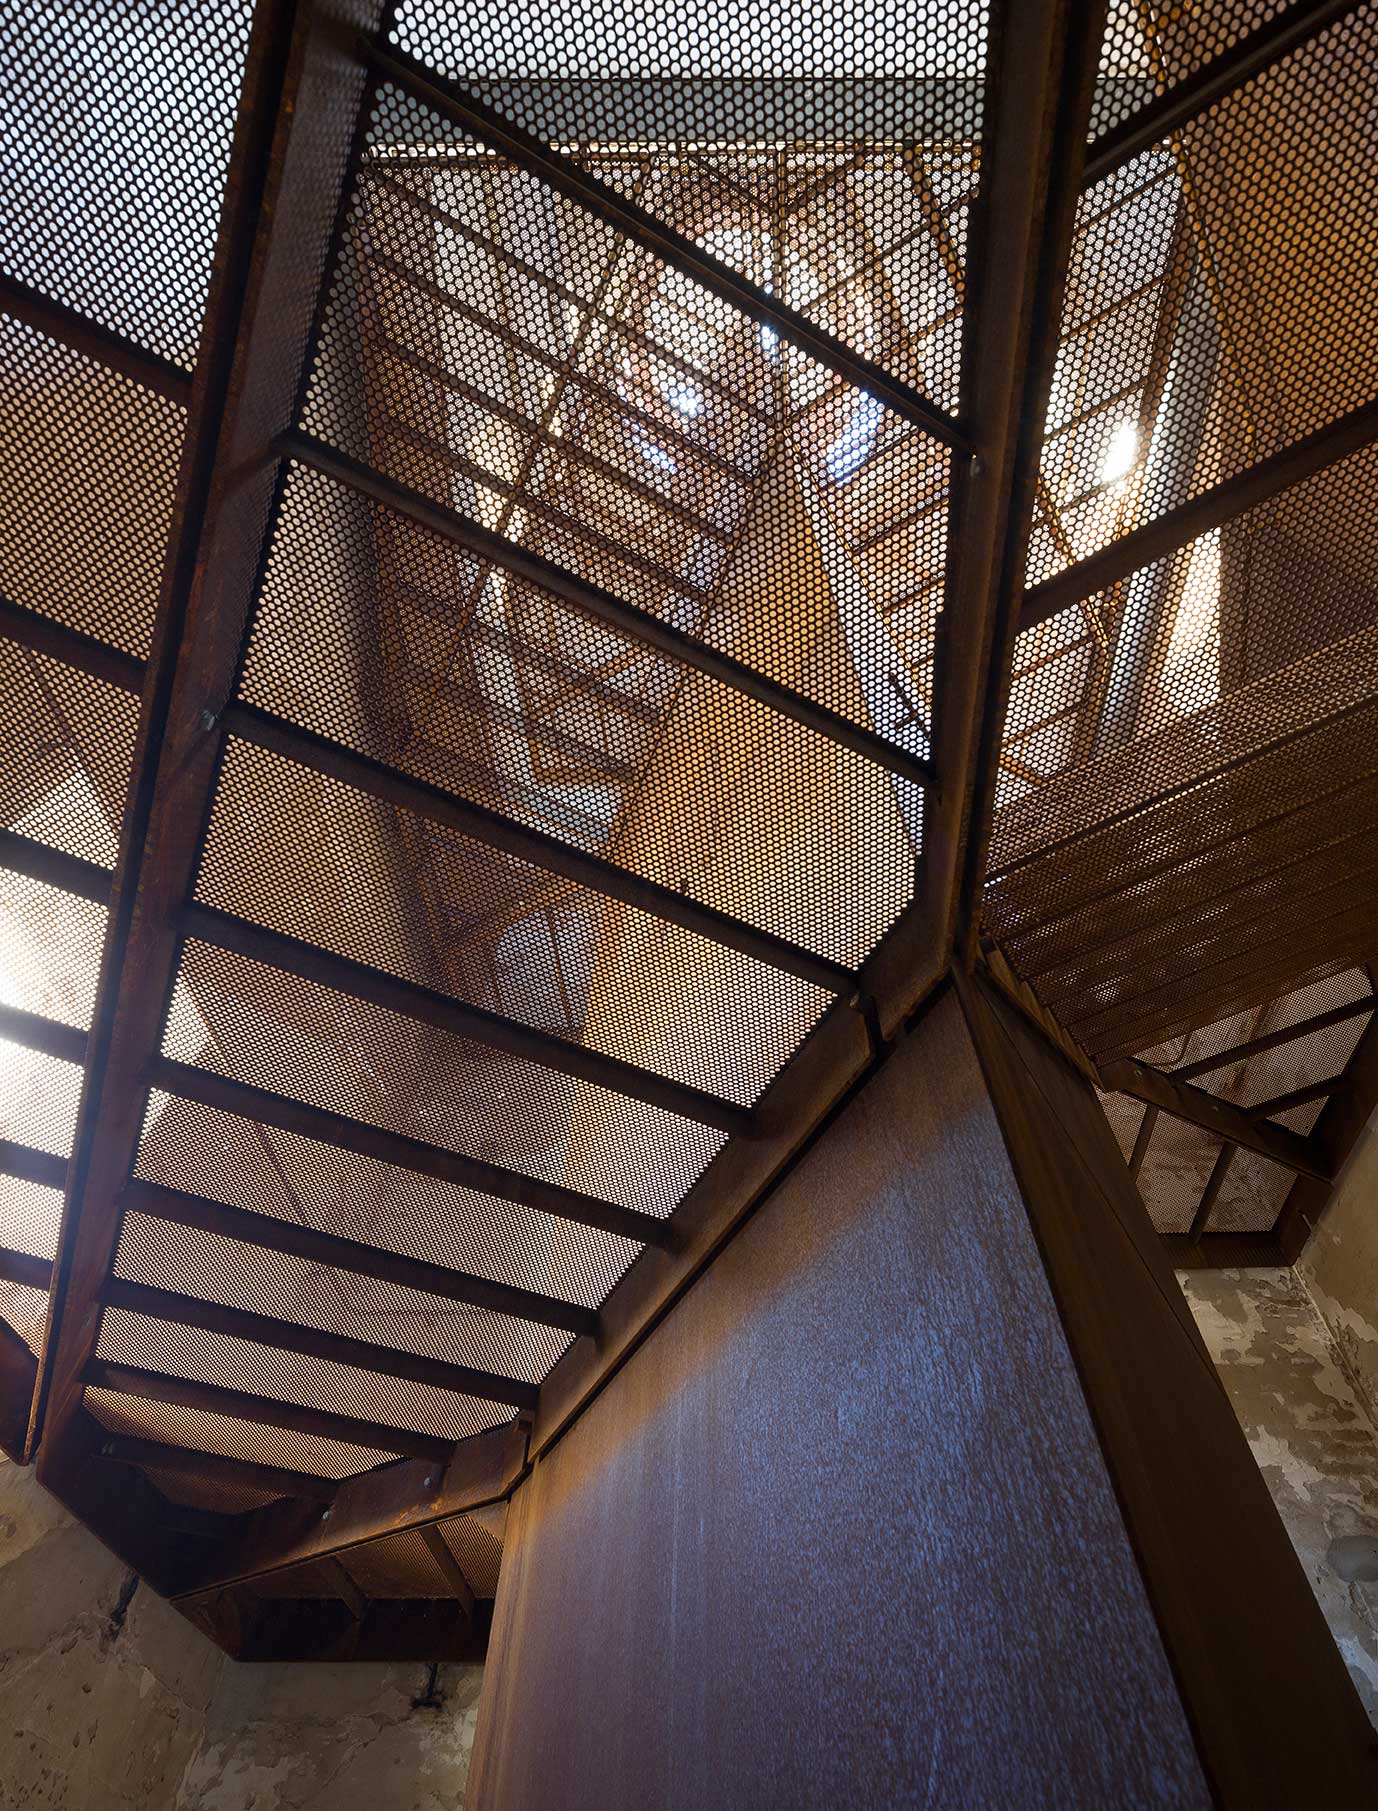 Disappearing Lighthouse Renovation in Denmark by JAJA Architects + Bessards' Studio | Yellowtrace